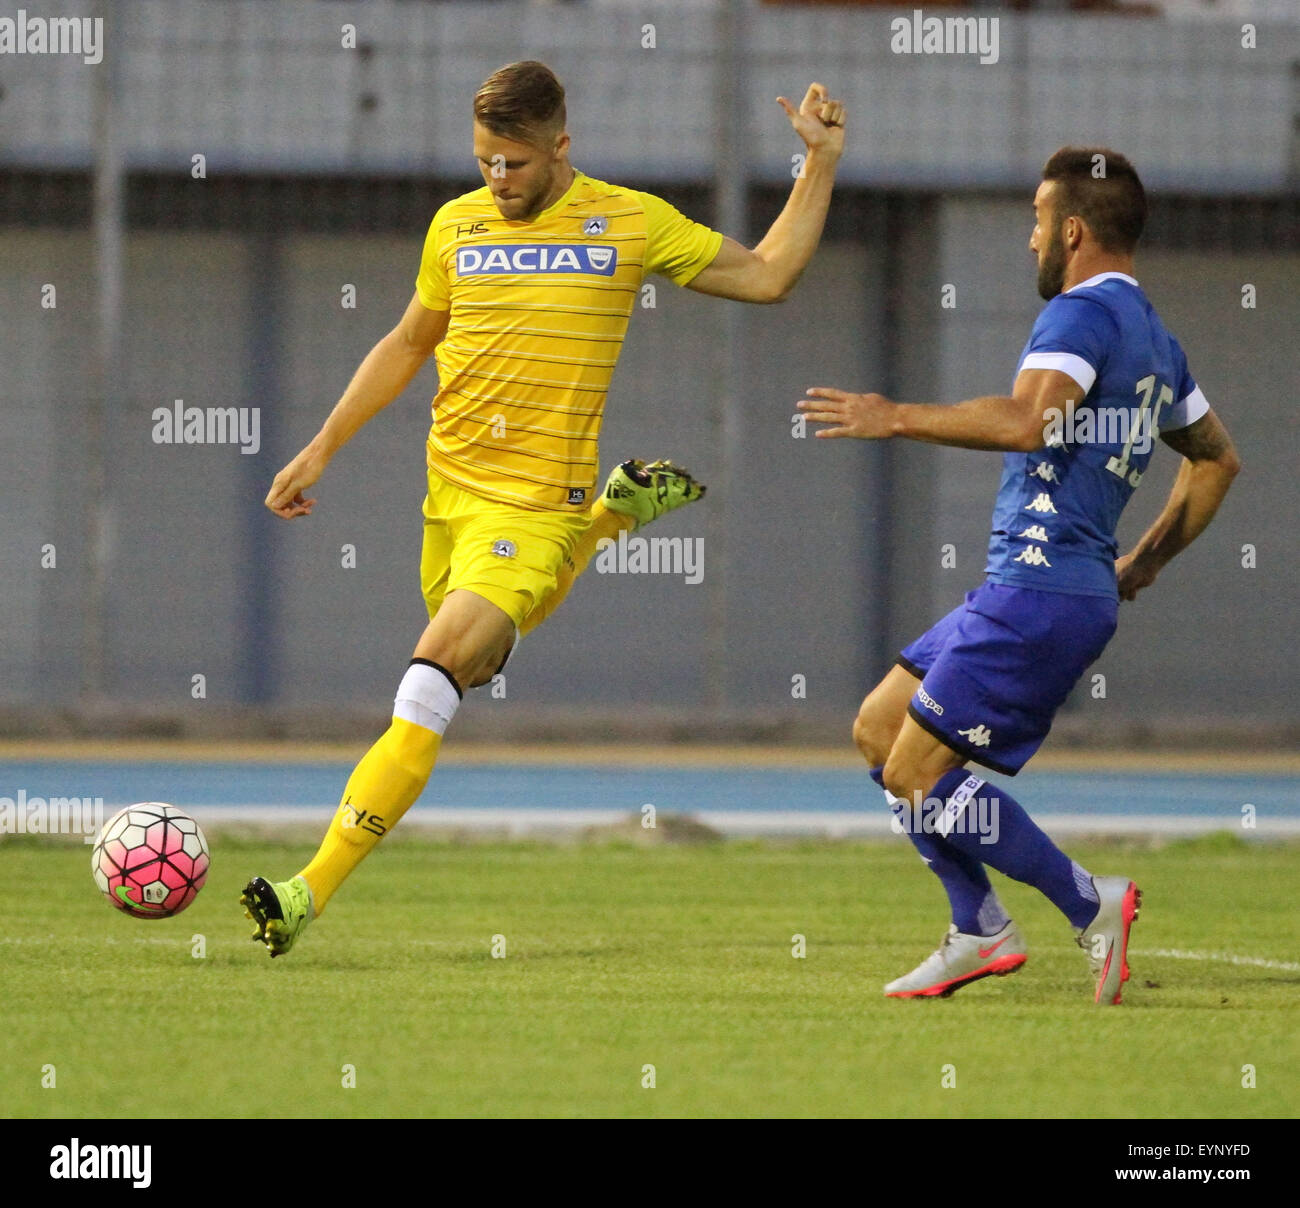 ITALY, Lignano: Udinese's midfielder Silvan Widmer during the friendly pre-season football match Udinese Calcio - Stock Image